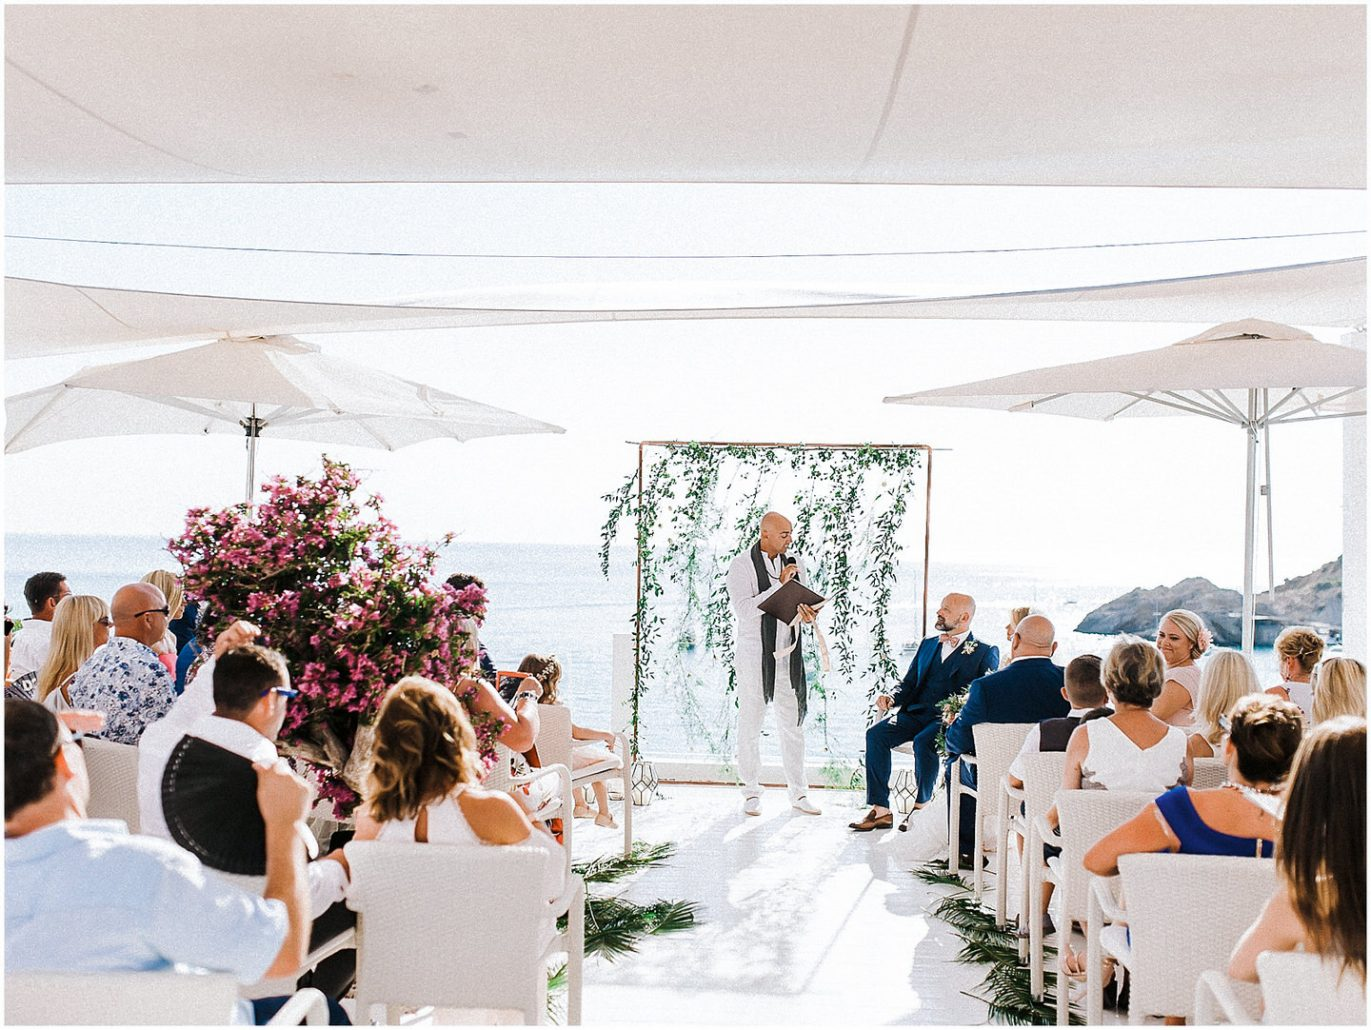 Wedding_CottonBeach_Ibiza_Photographer_Youri_Claessens_Photography (14 of 71)